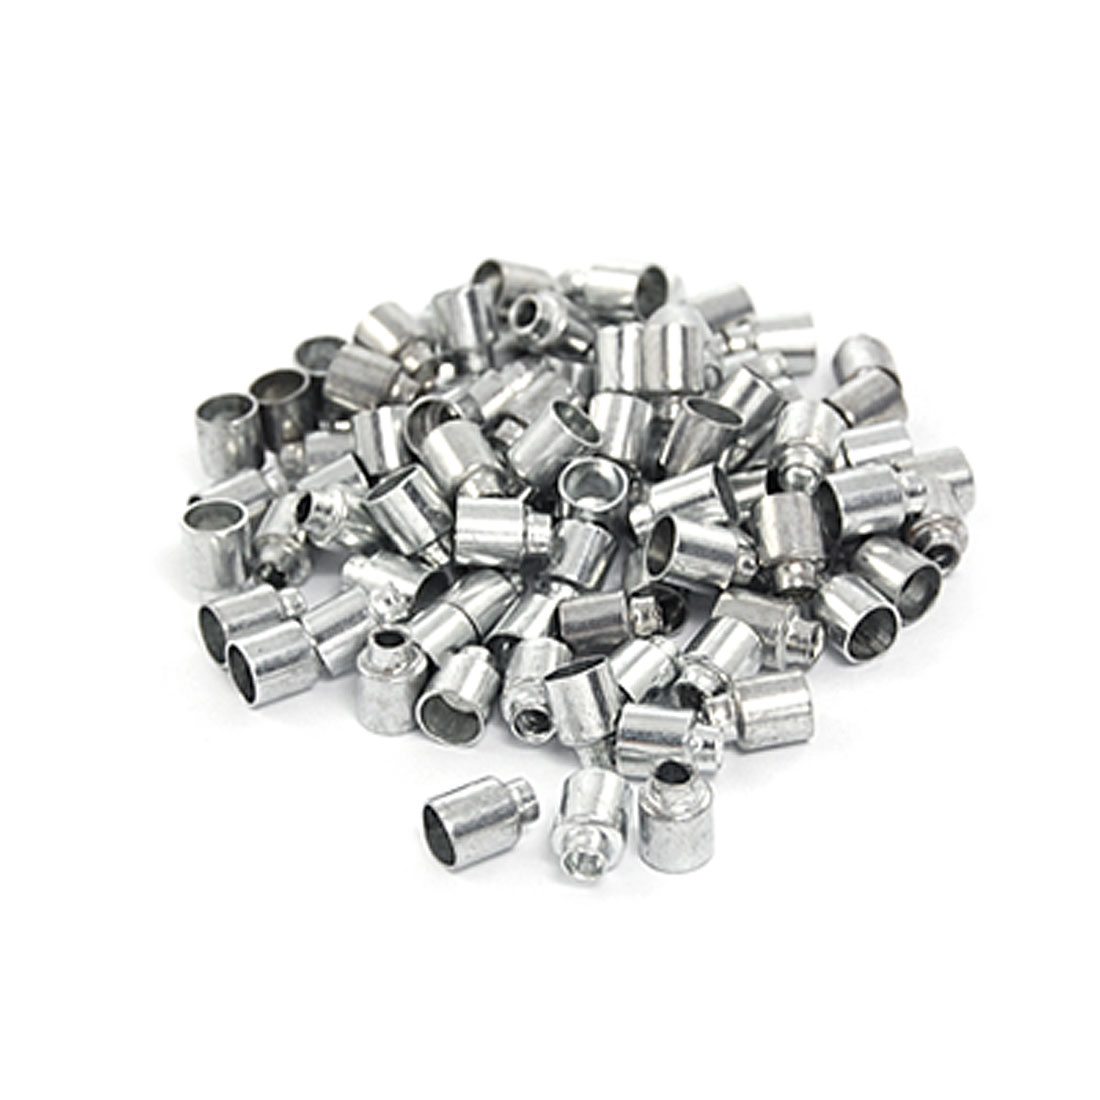 96 Pcs Silver Tone Bicycle Bike Brake Cable Housing Ferrules Cap 6mm